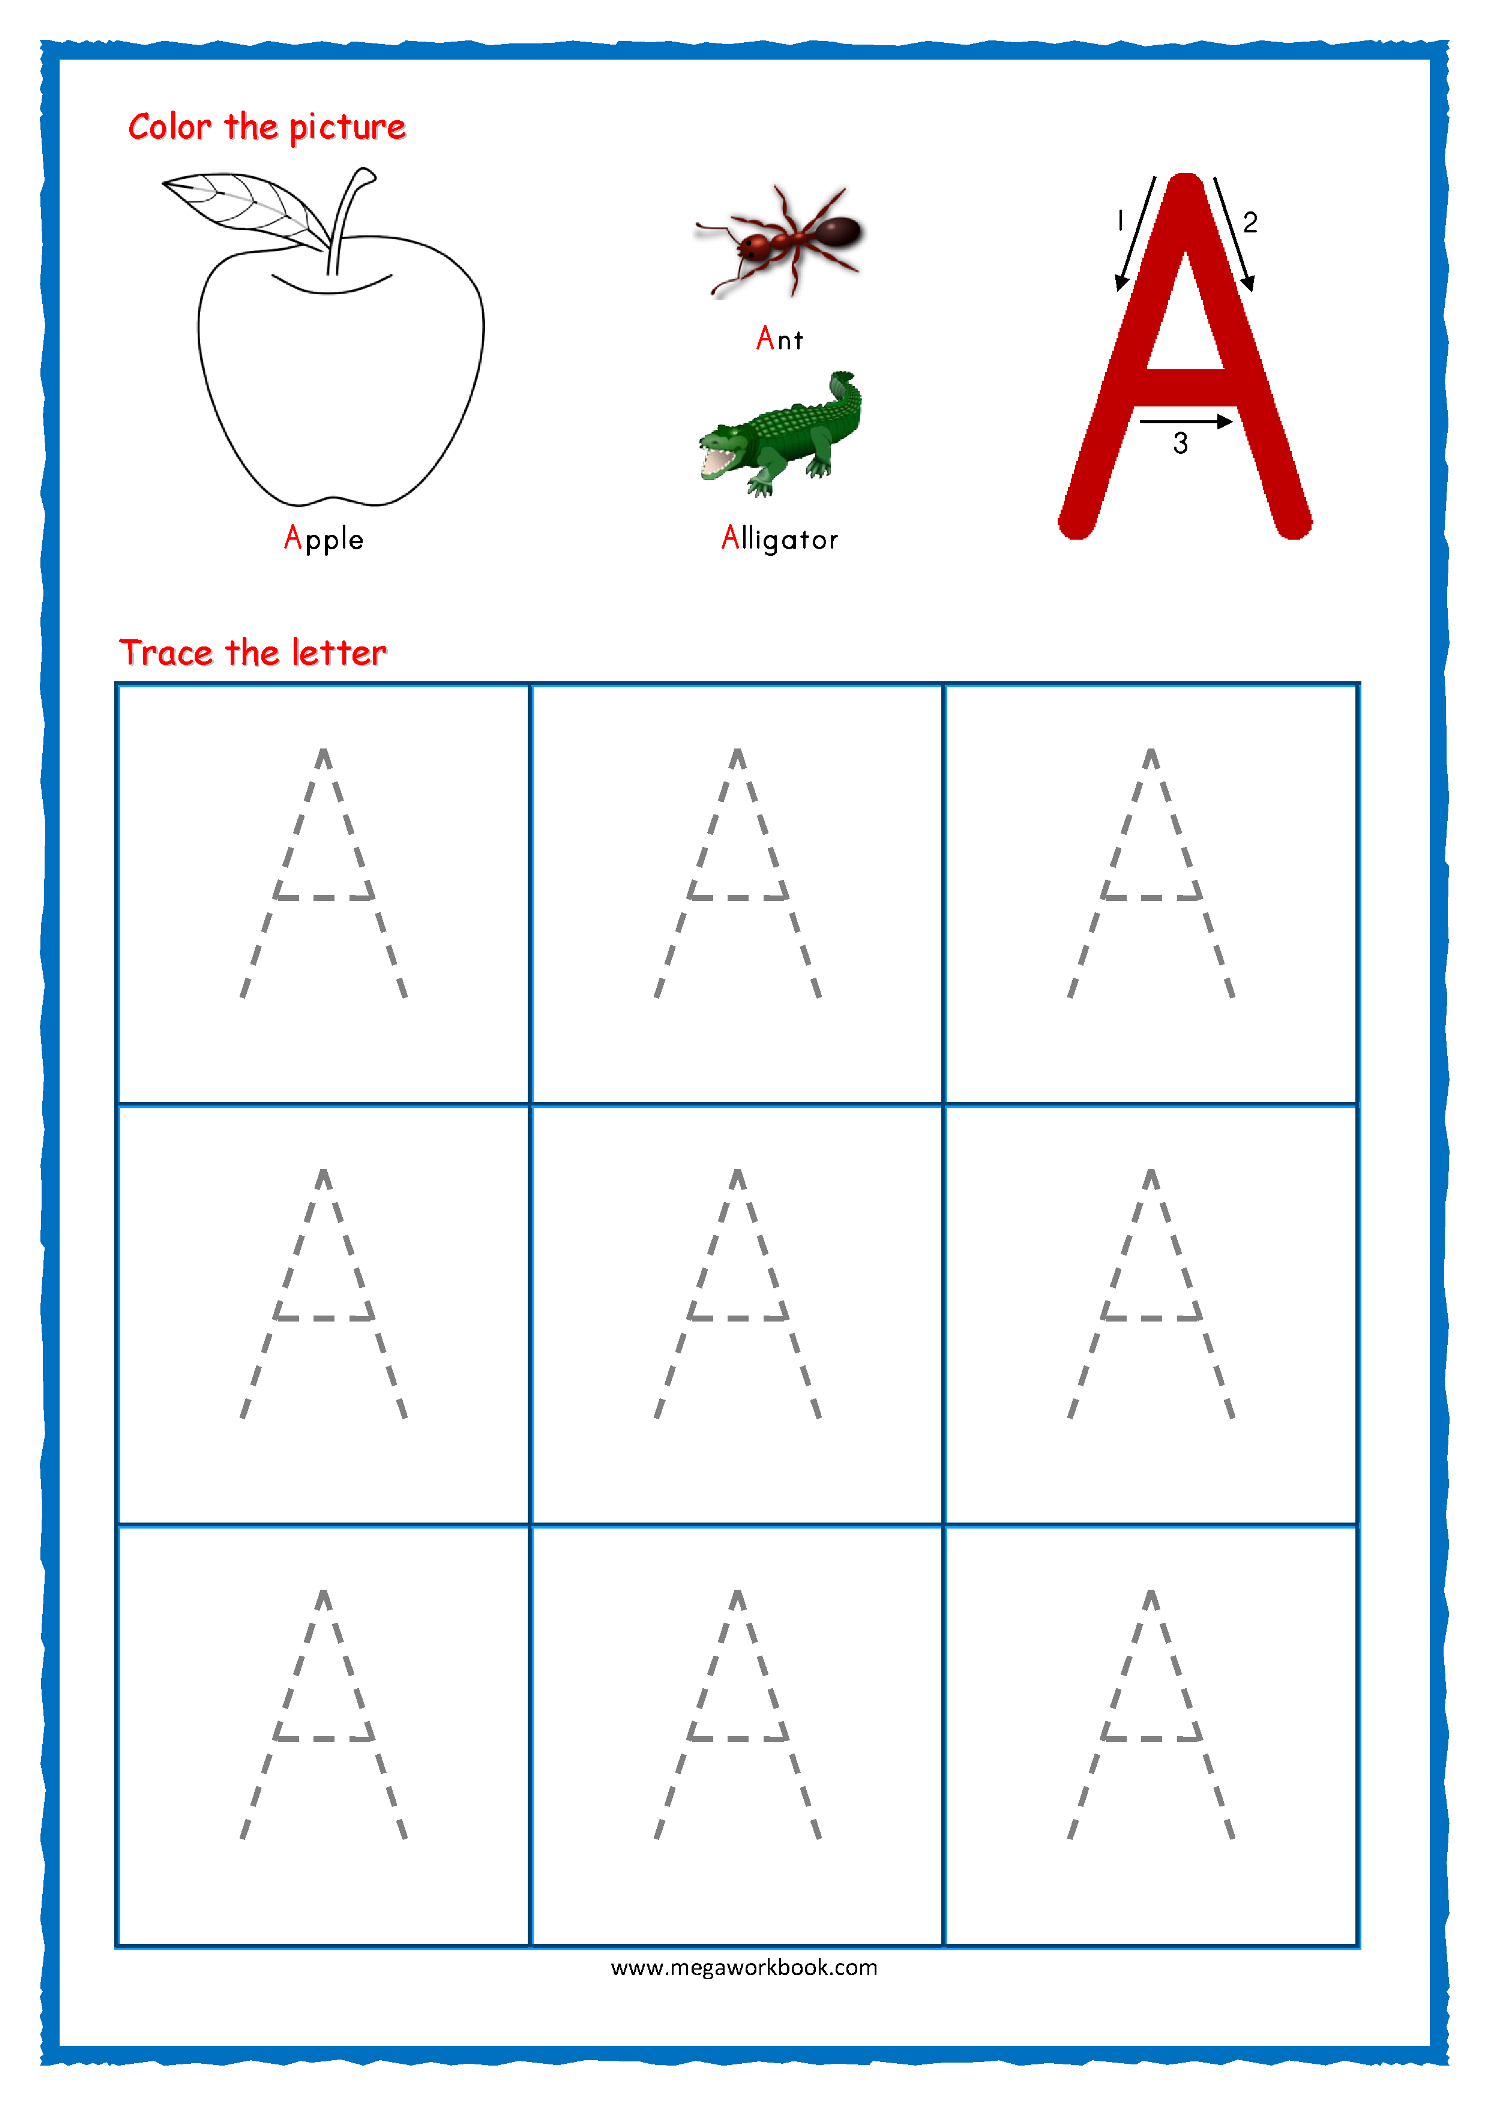 Coloring Book : Free Printable Alphabet Tracing Sheets pertaining to Large Alphabet Letters For Tracing